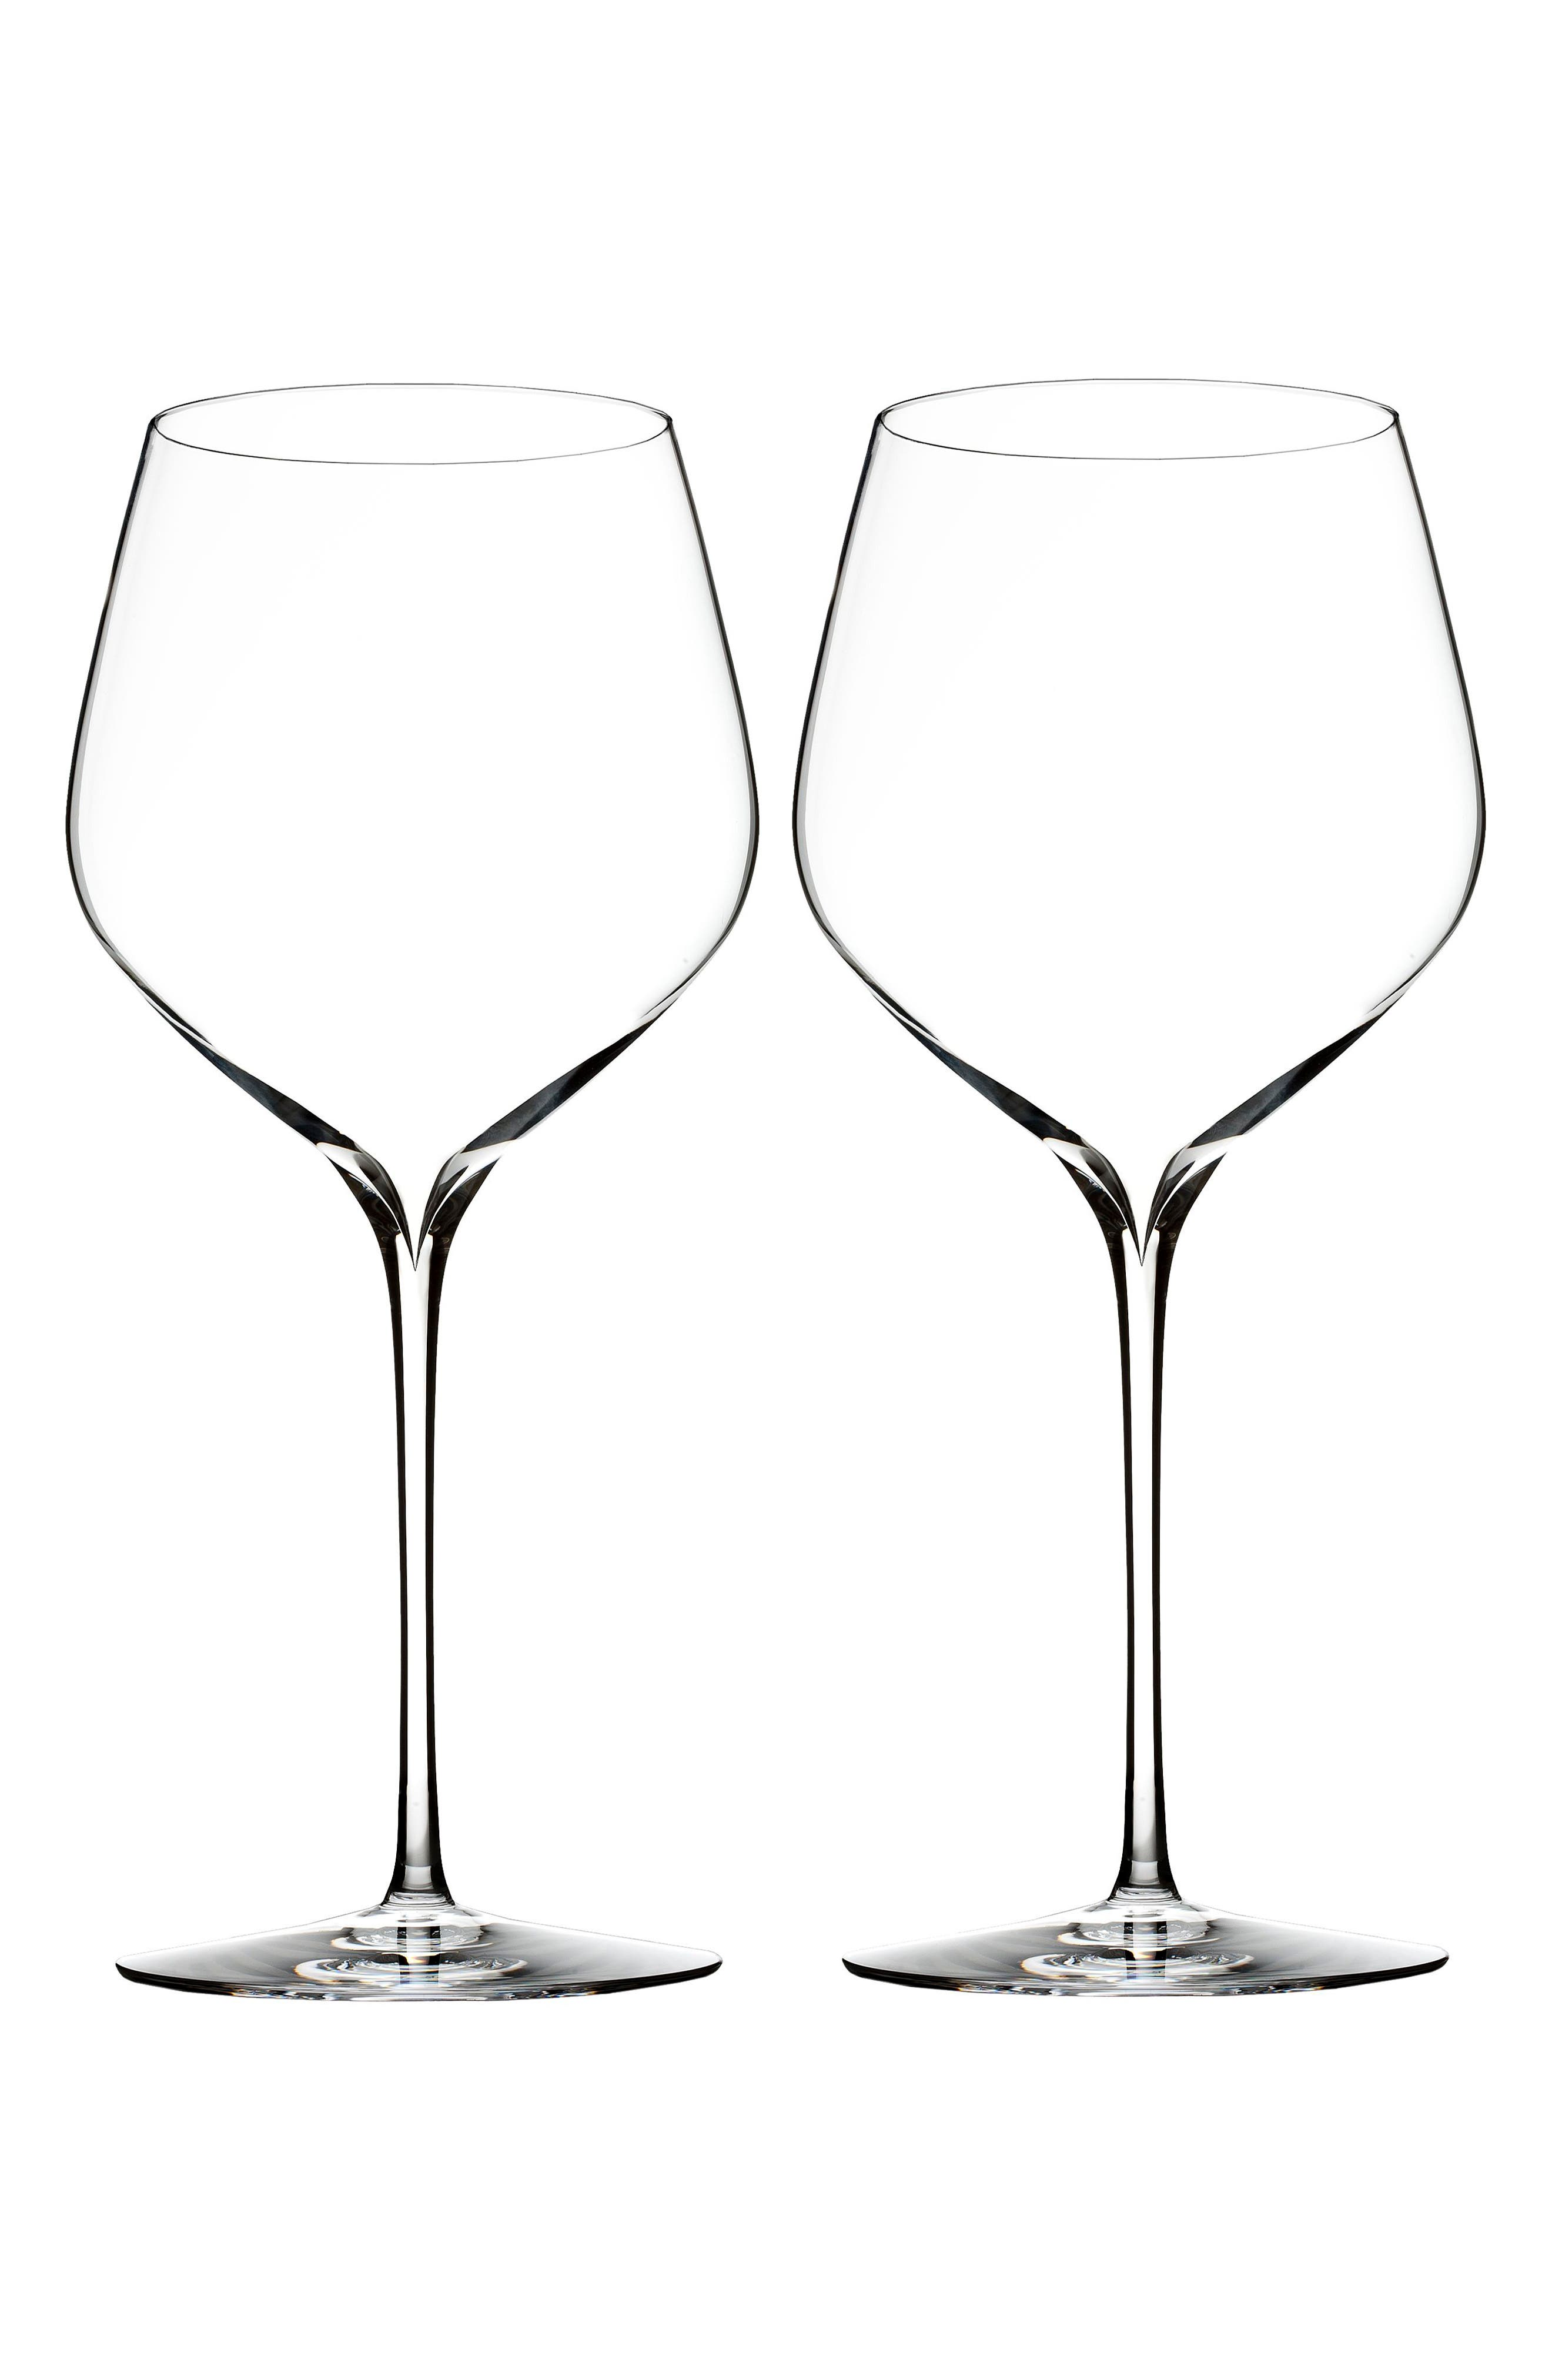 'Elegance' Fine Crystal Cabernet Sauvignon Glasses,                             Alternate thumbnail 2, color,                             100